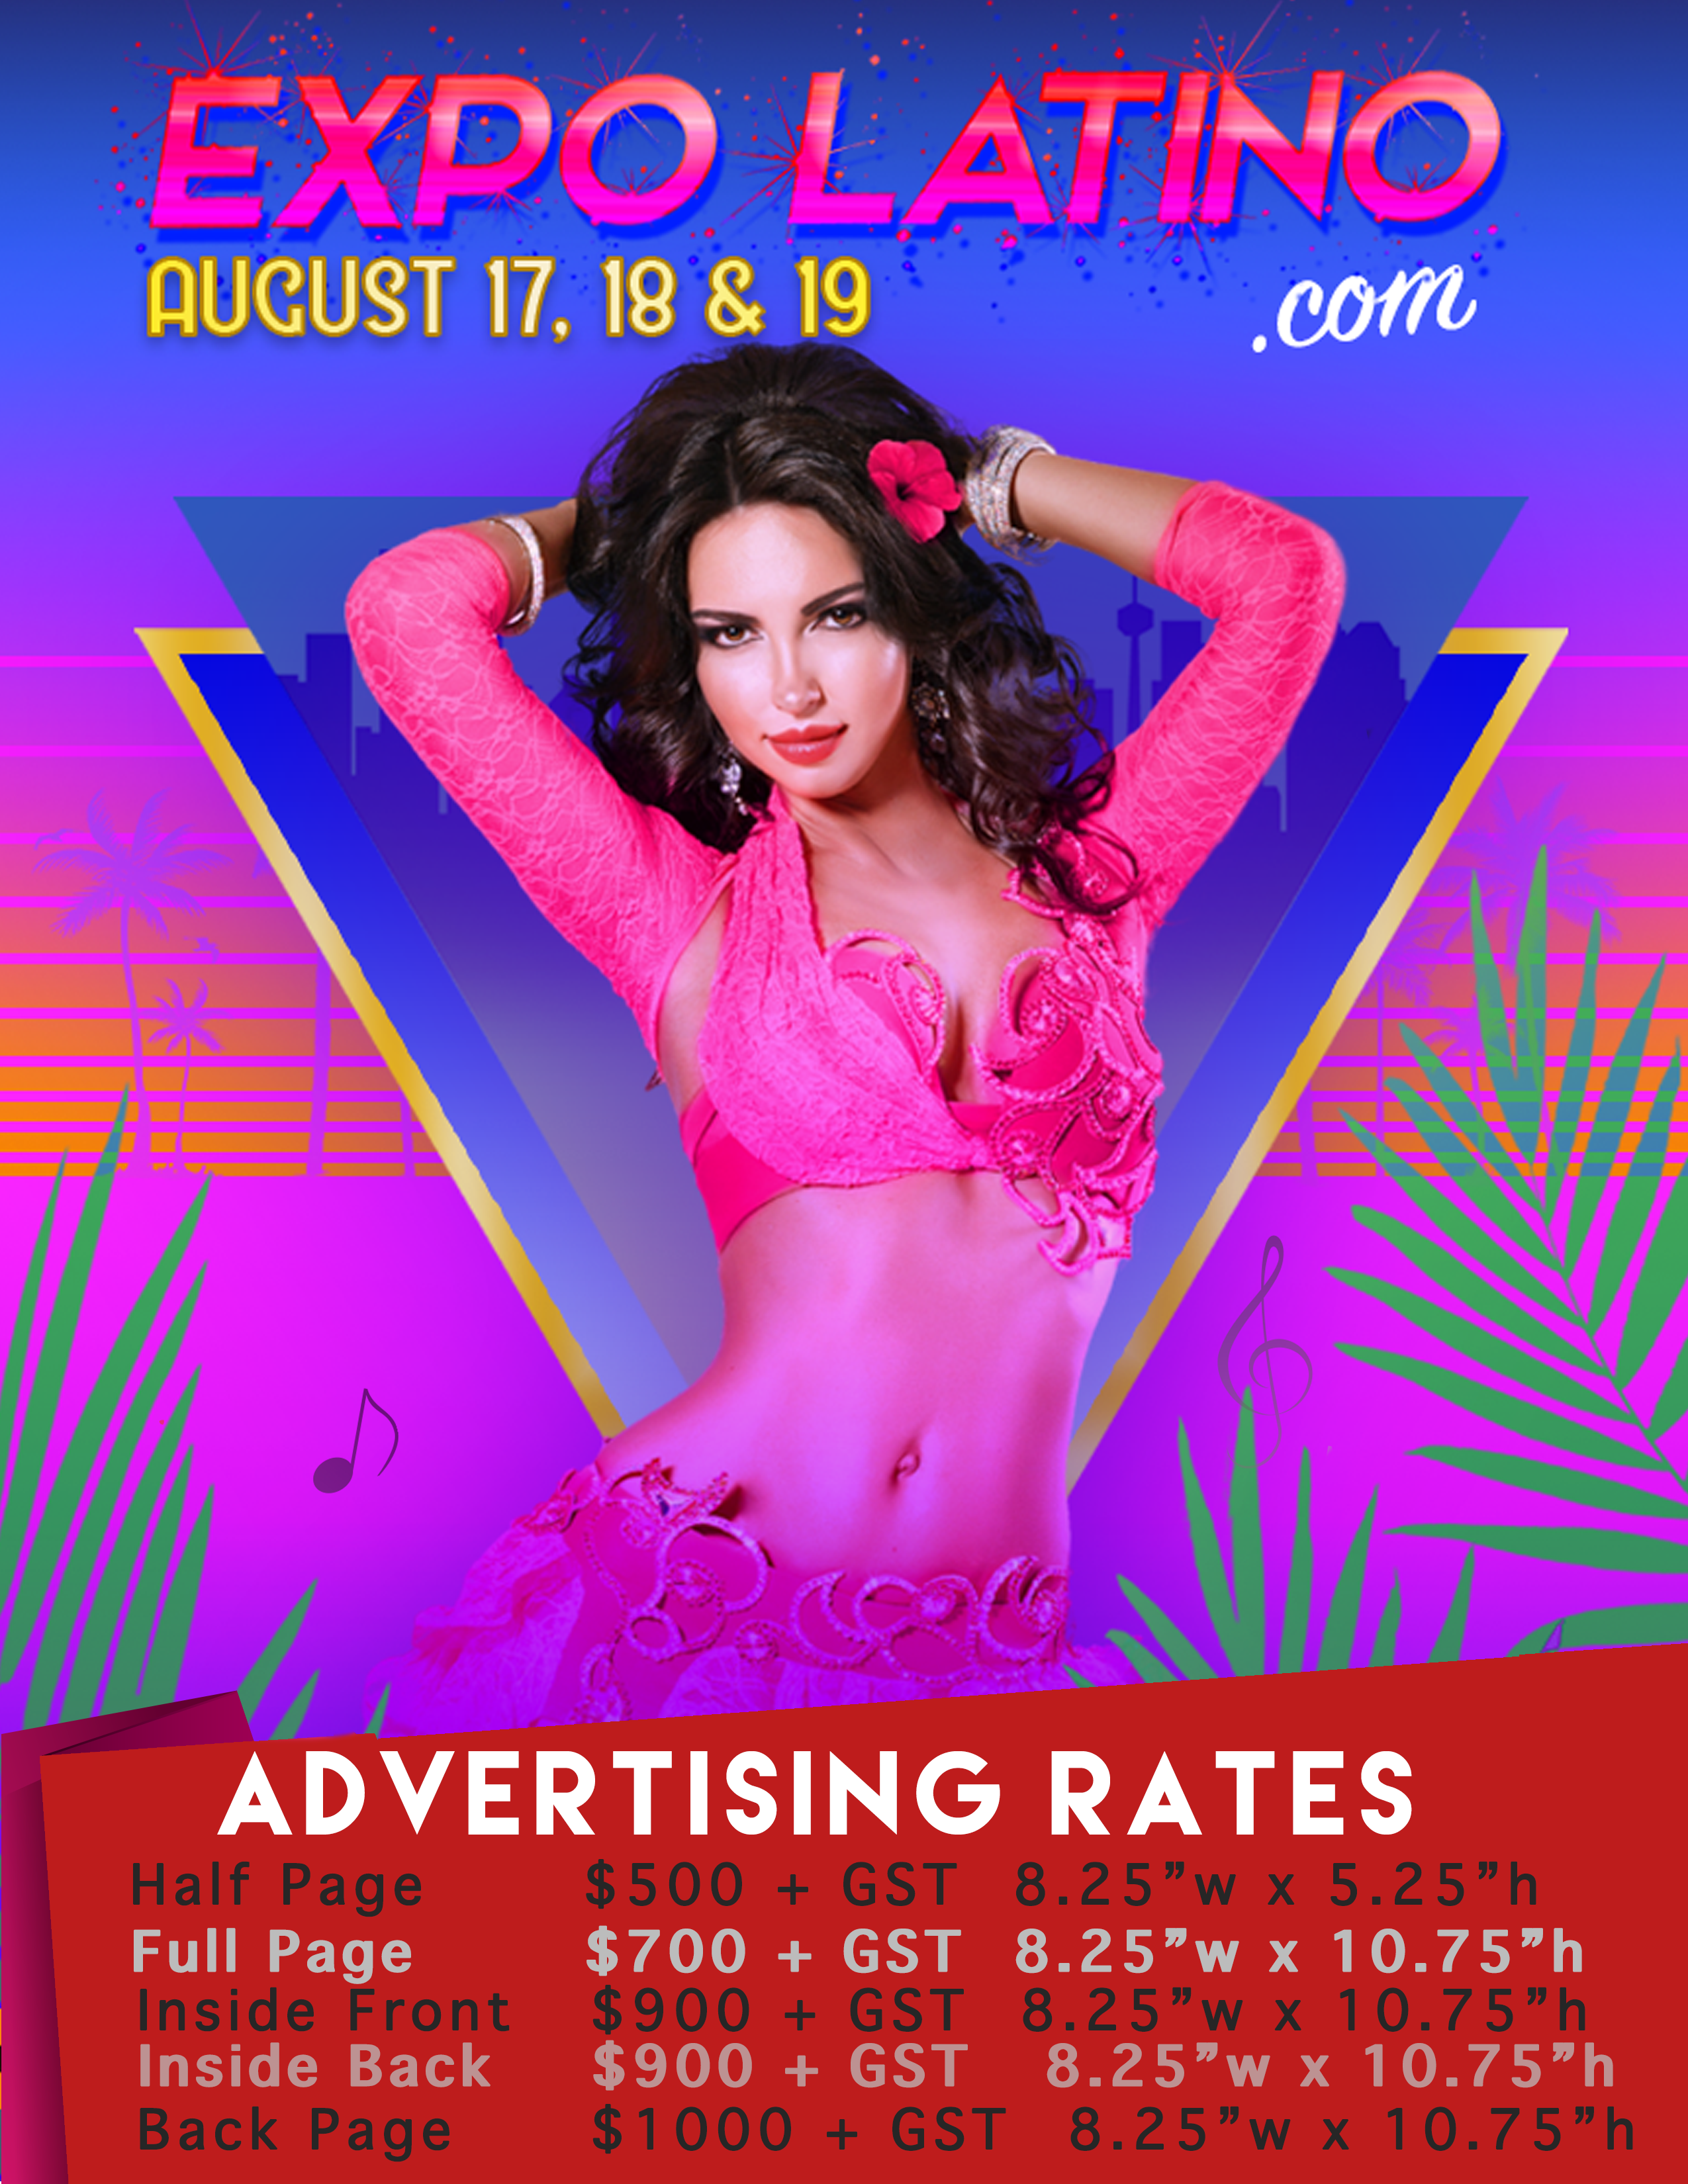 Advertising Specs & Rates